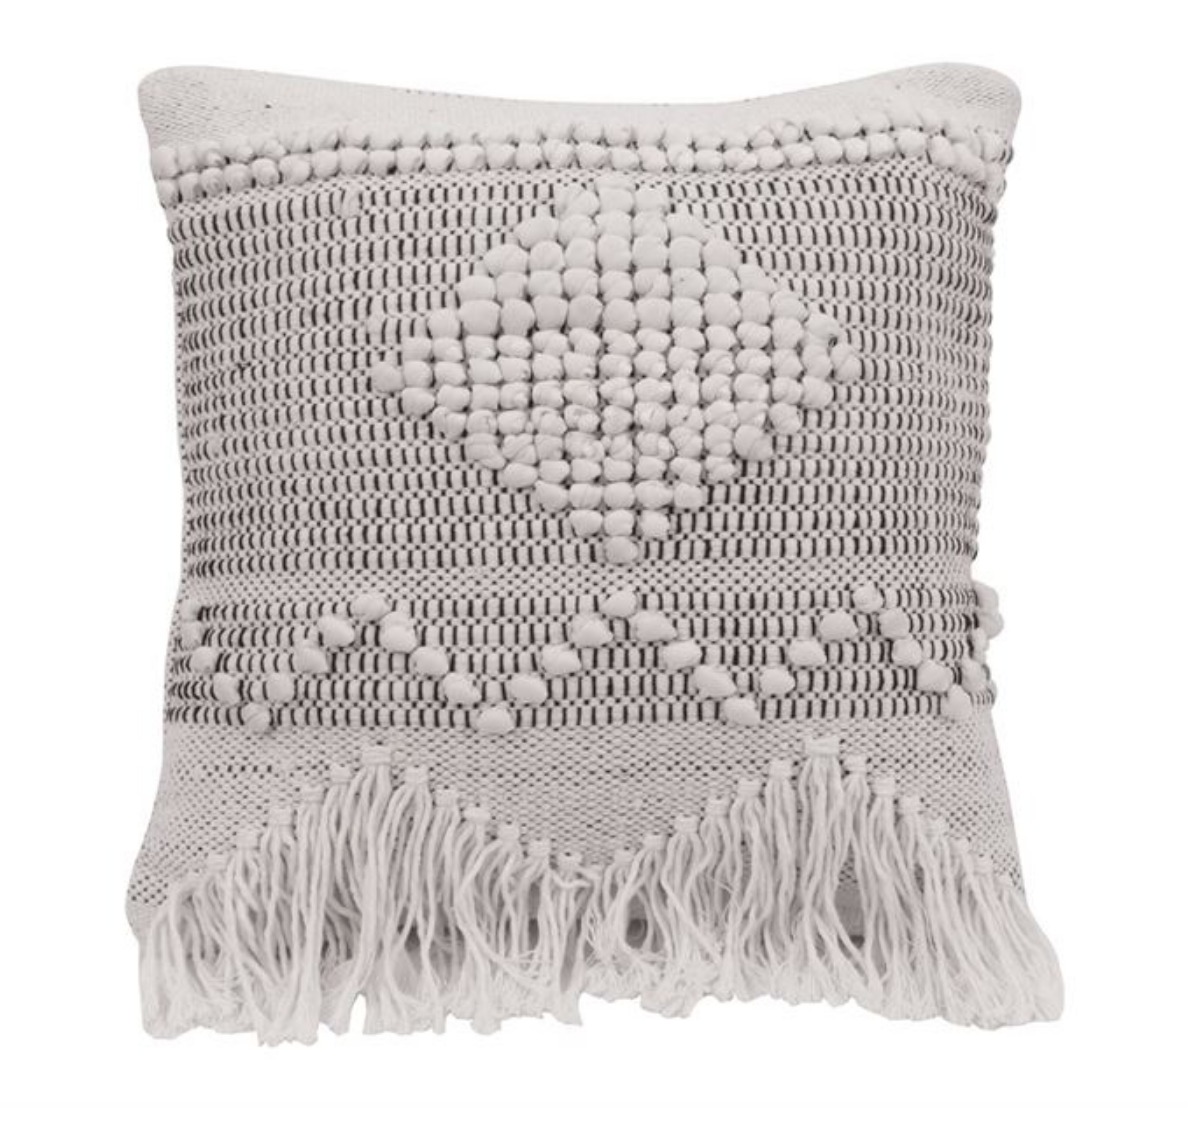 Neutral White & Black Fringe Wool Pillow